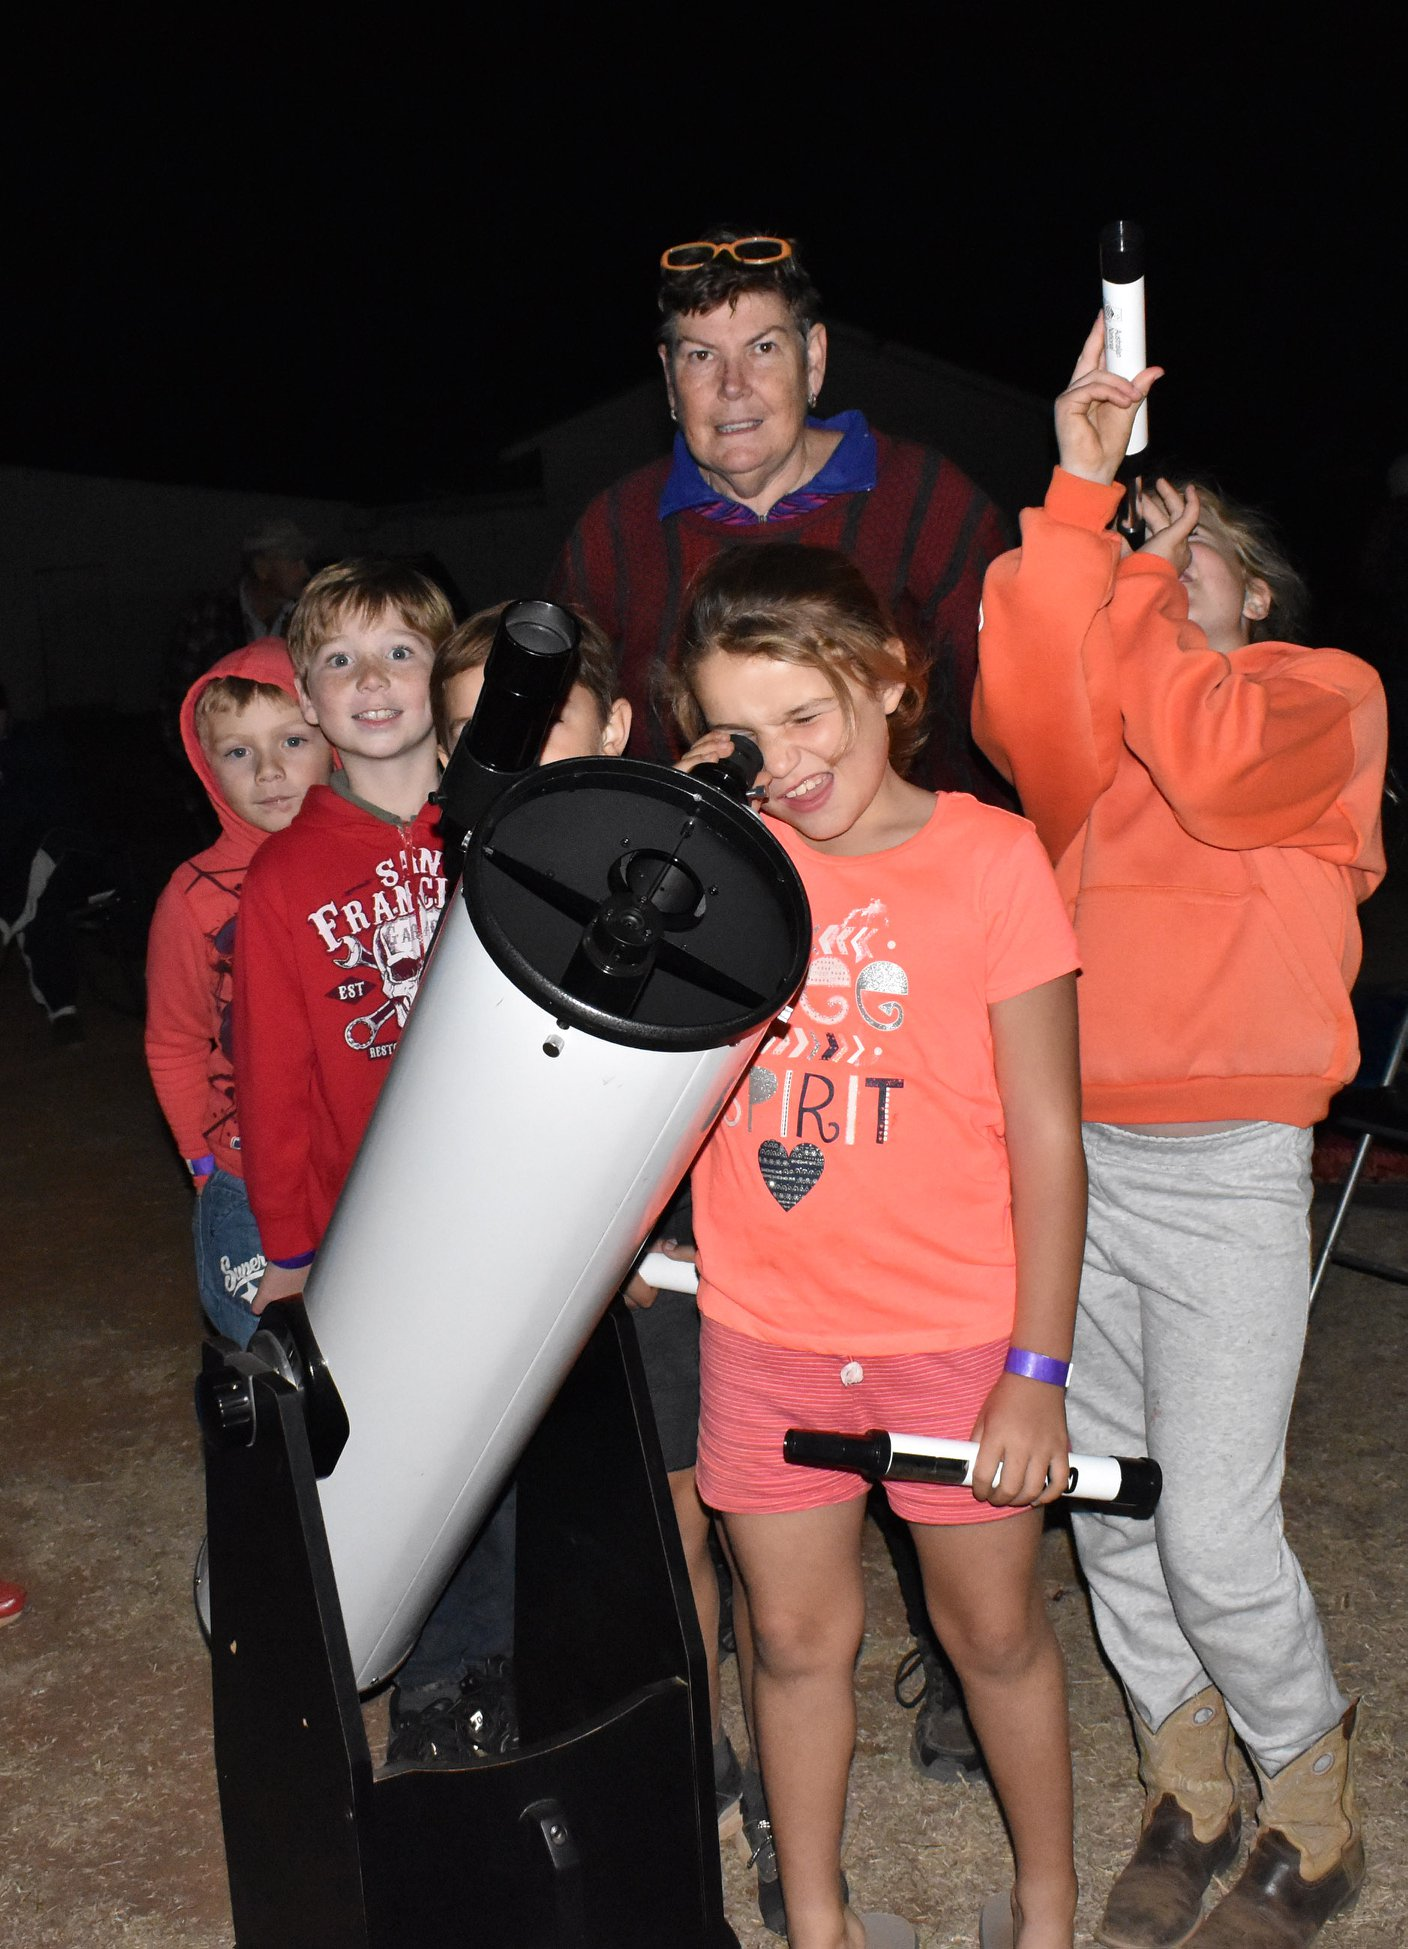 Milroy - Star gazing with Donna the Astr